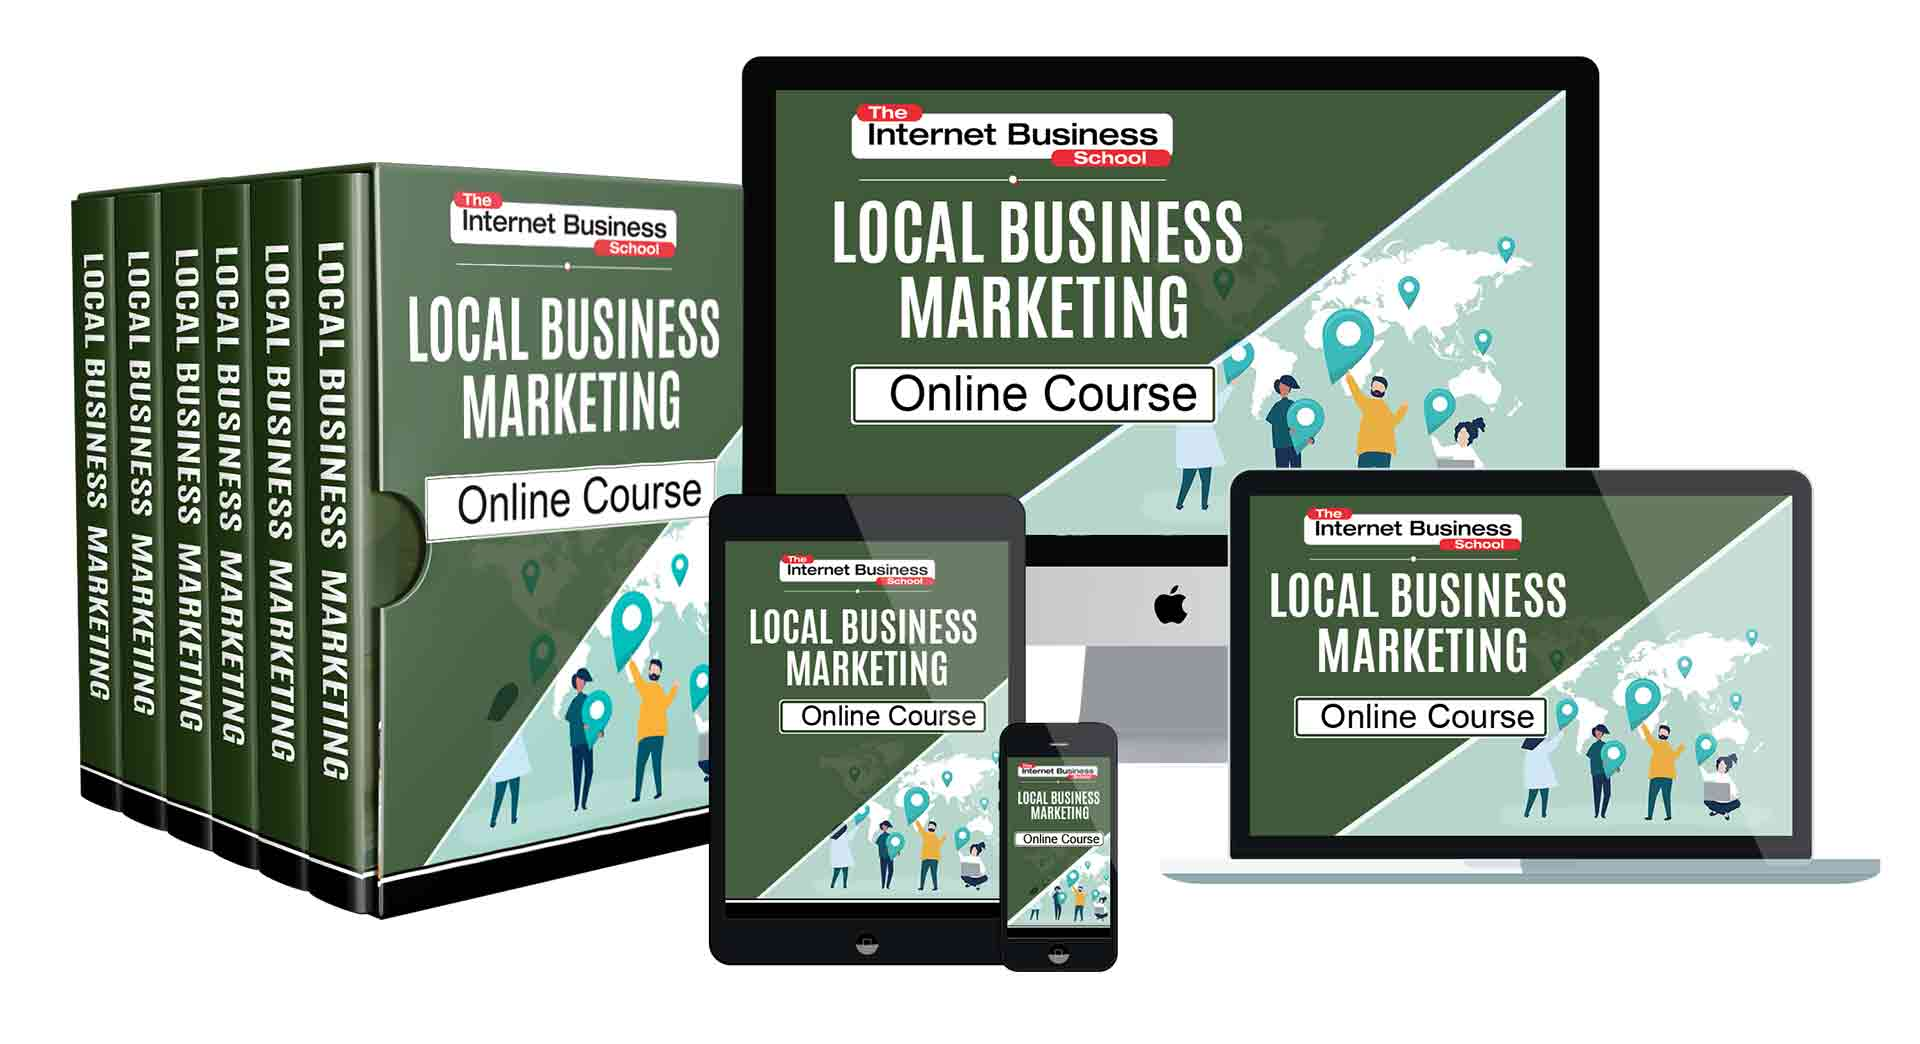 Local Business Marketing Online Course